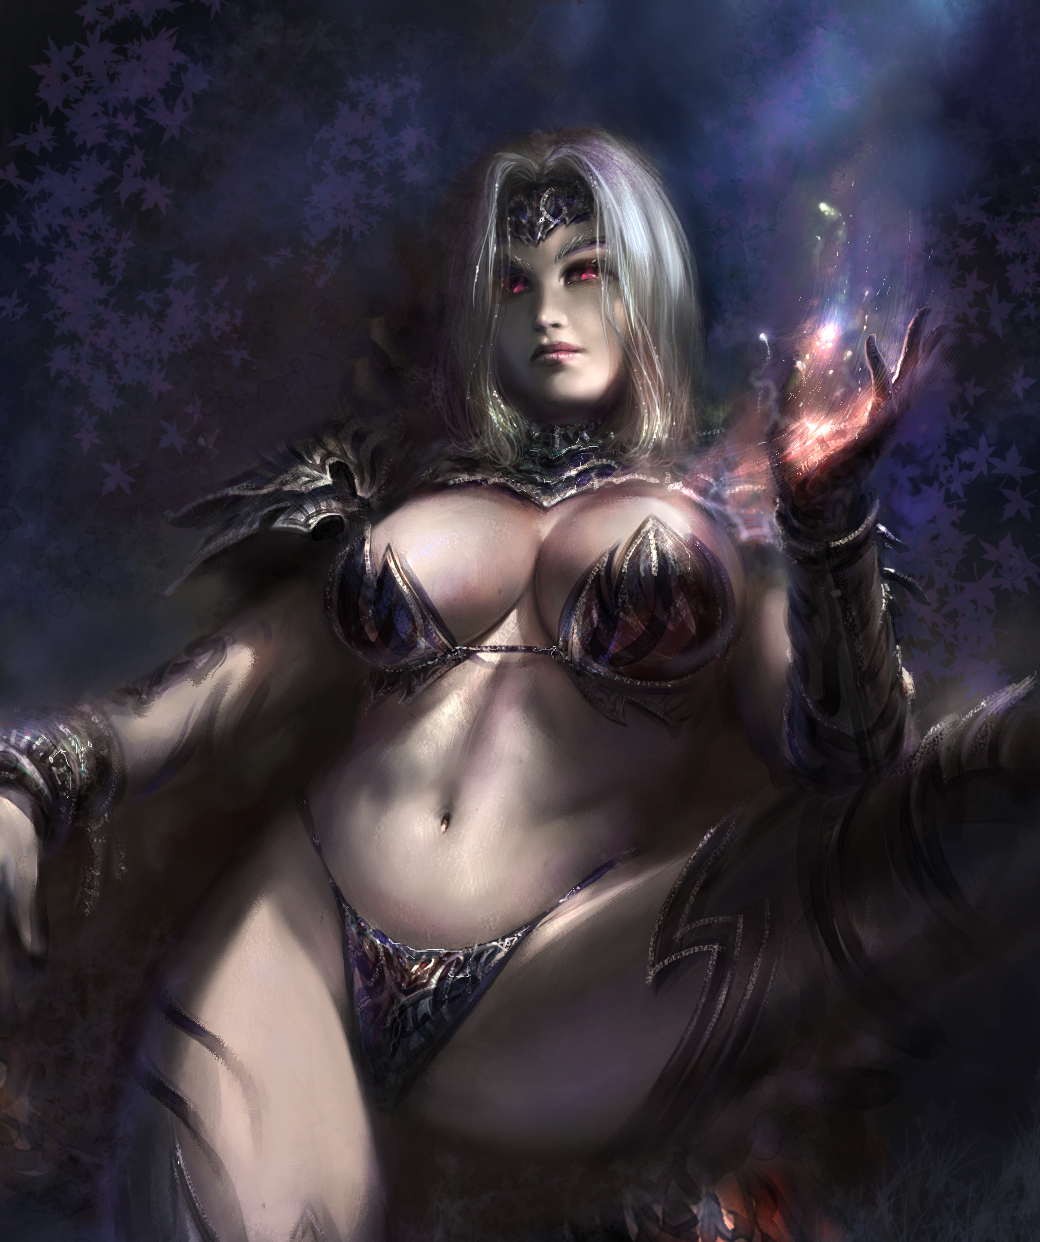 Dark fantasy artwork nude adult pictures